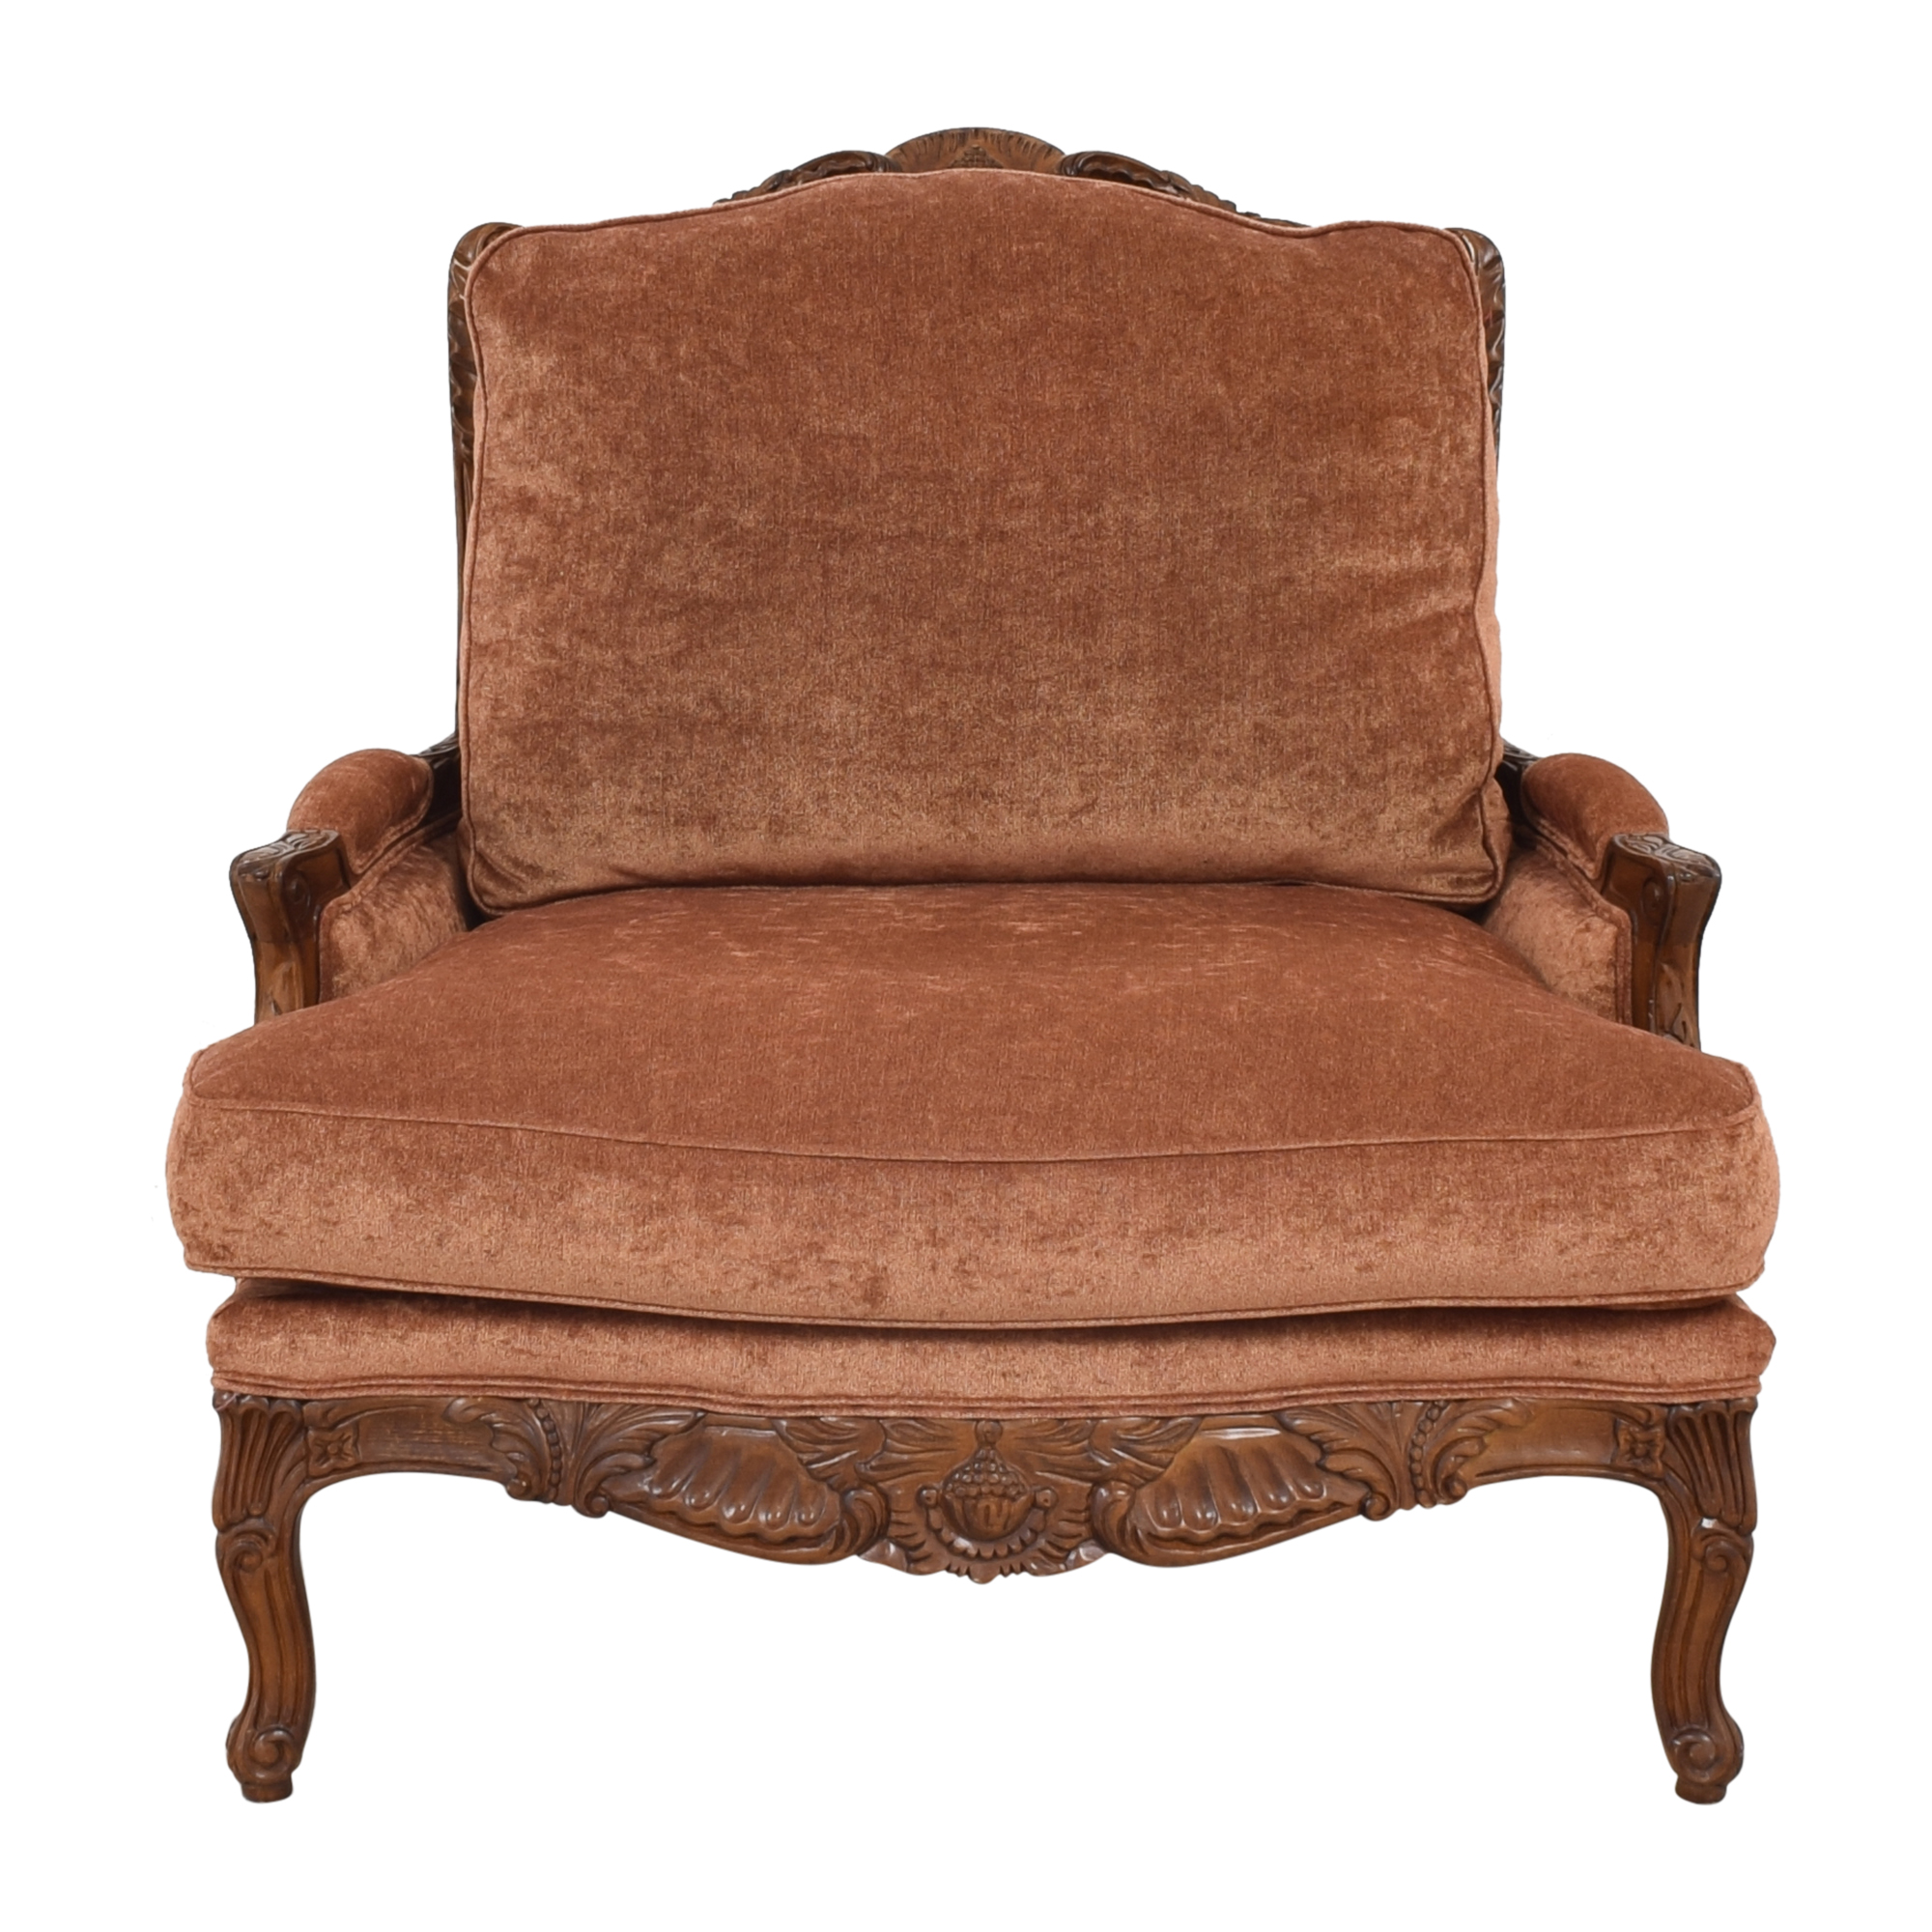 Zacksons Fine Furniture Zaksons Carved Lounge Chair on sale